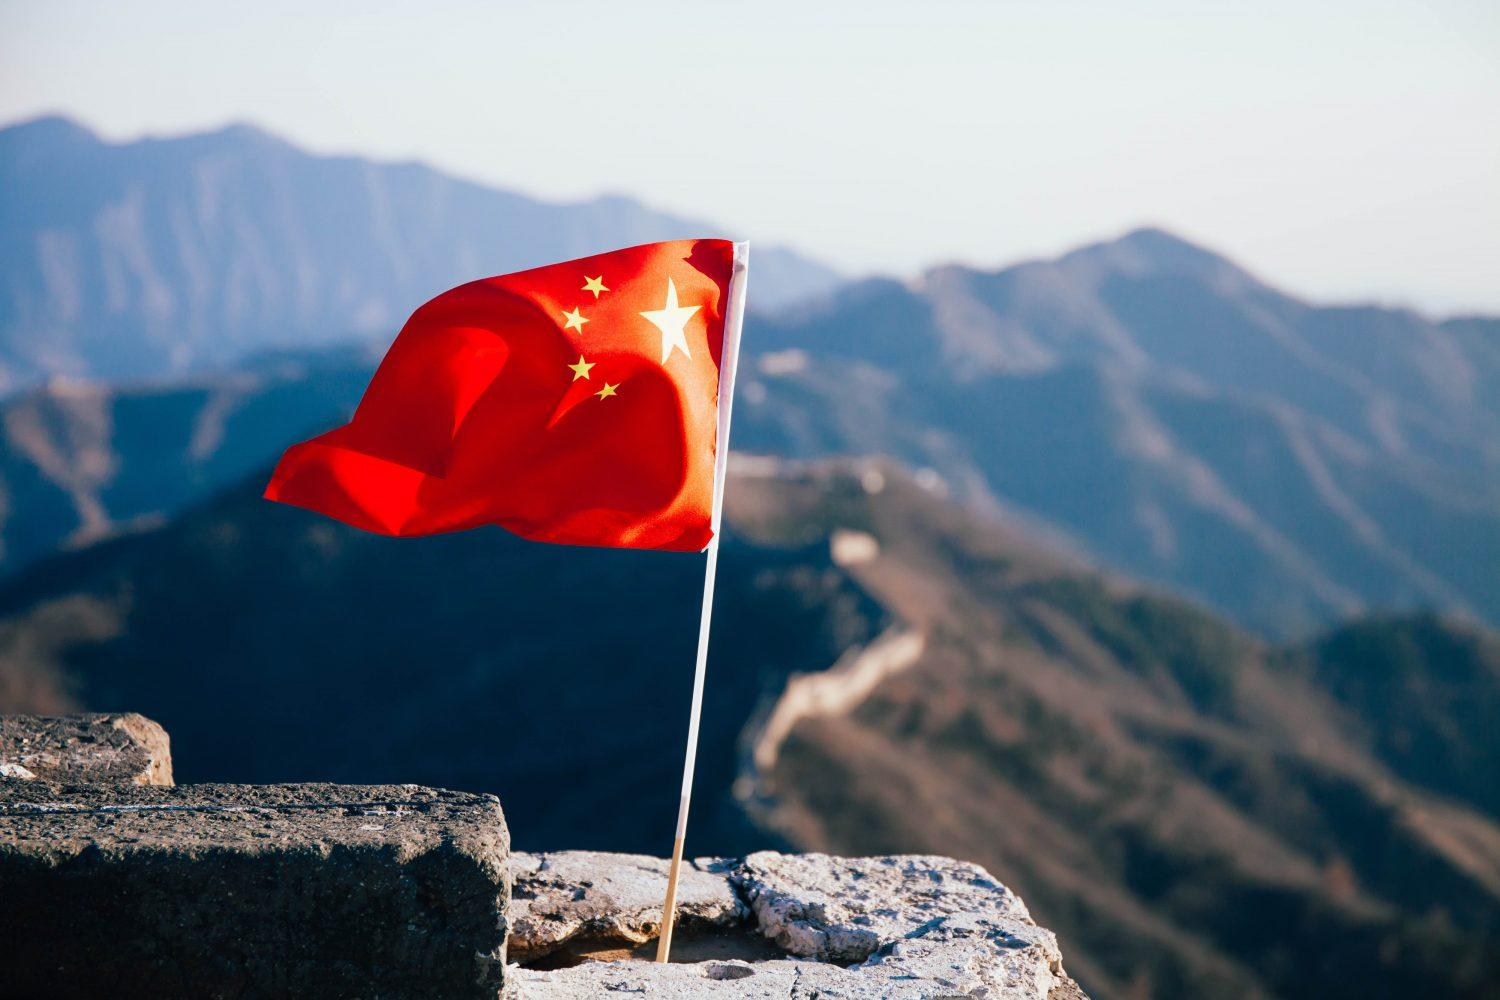 China's BSN Builder Urges Developers to Look Beyond Cryptocurrency